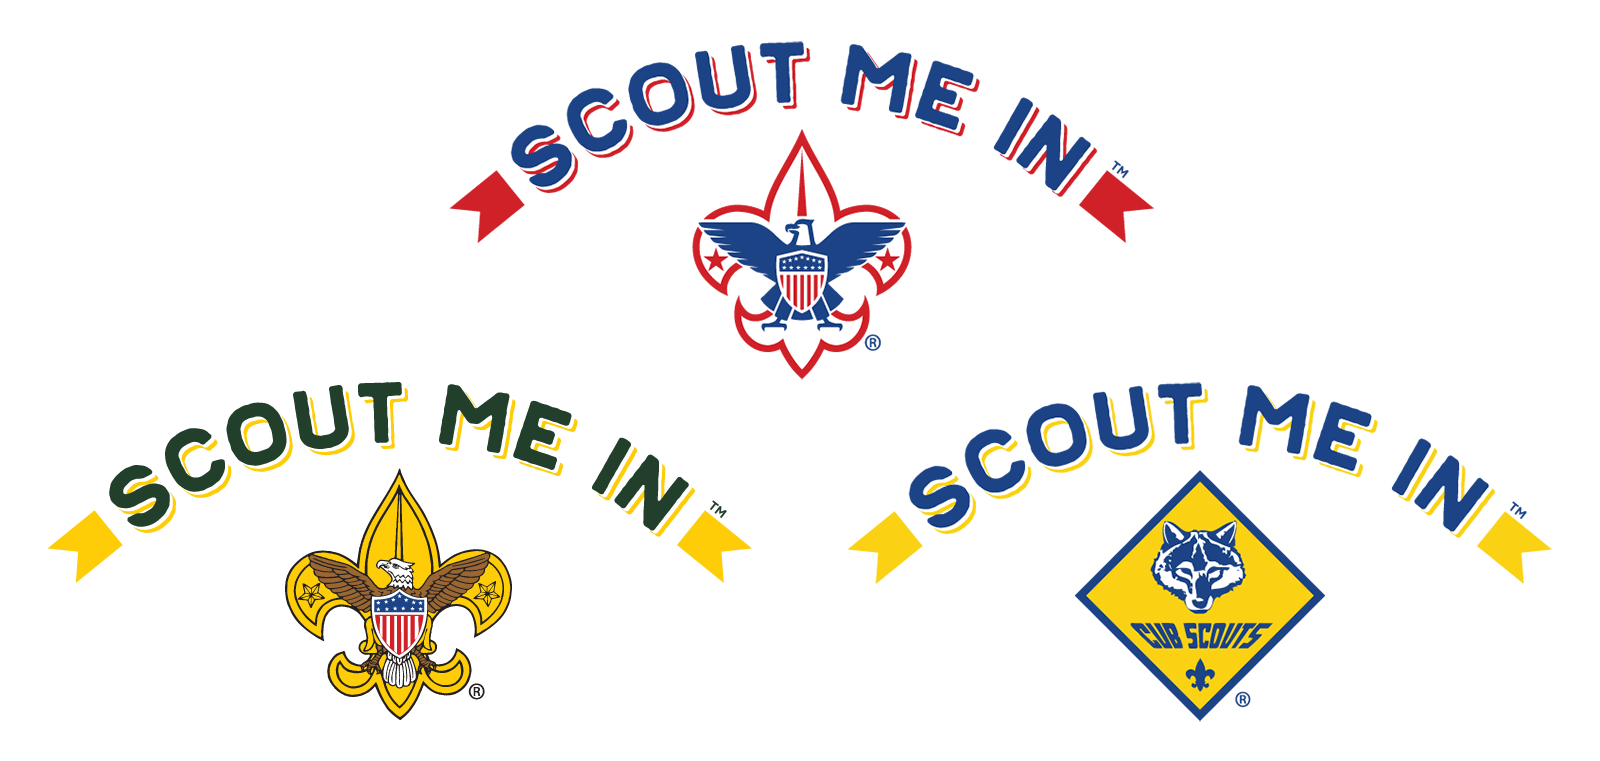 Family scouting boy scouts. Fundraiser clipart fete